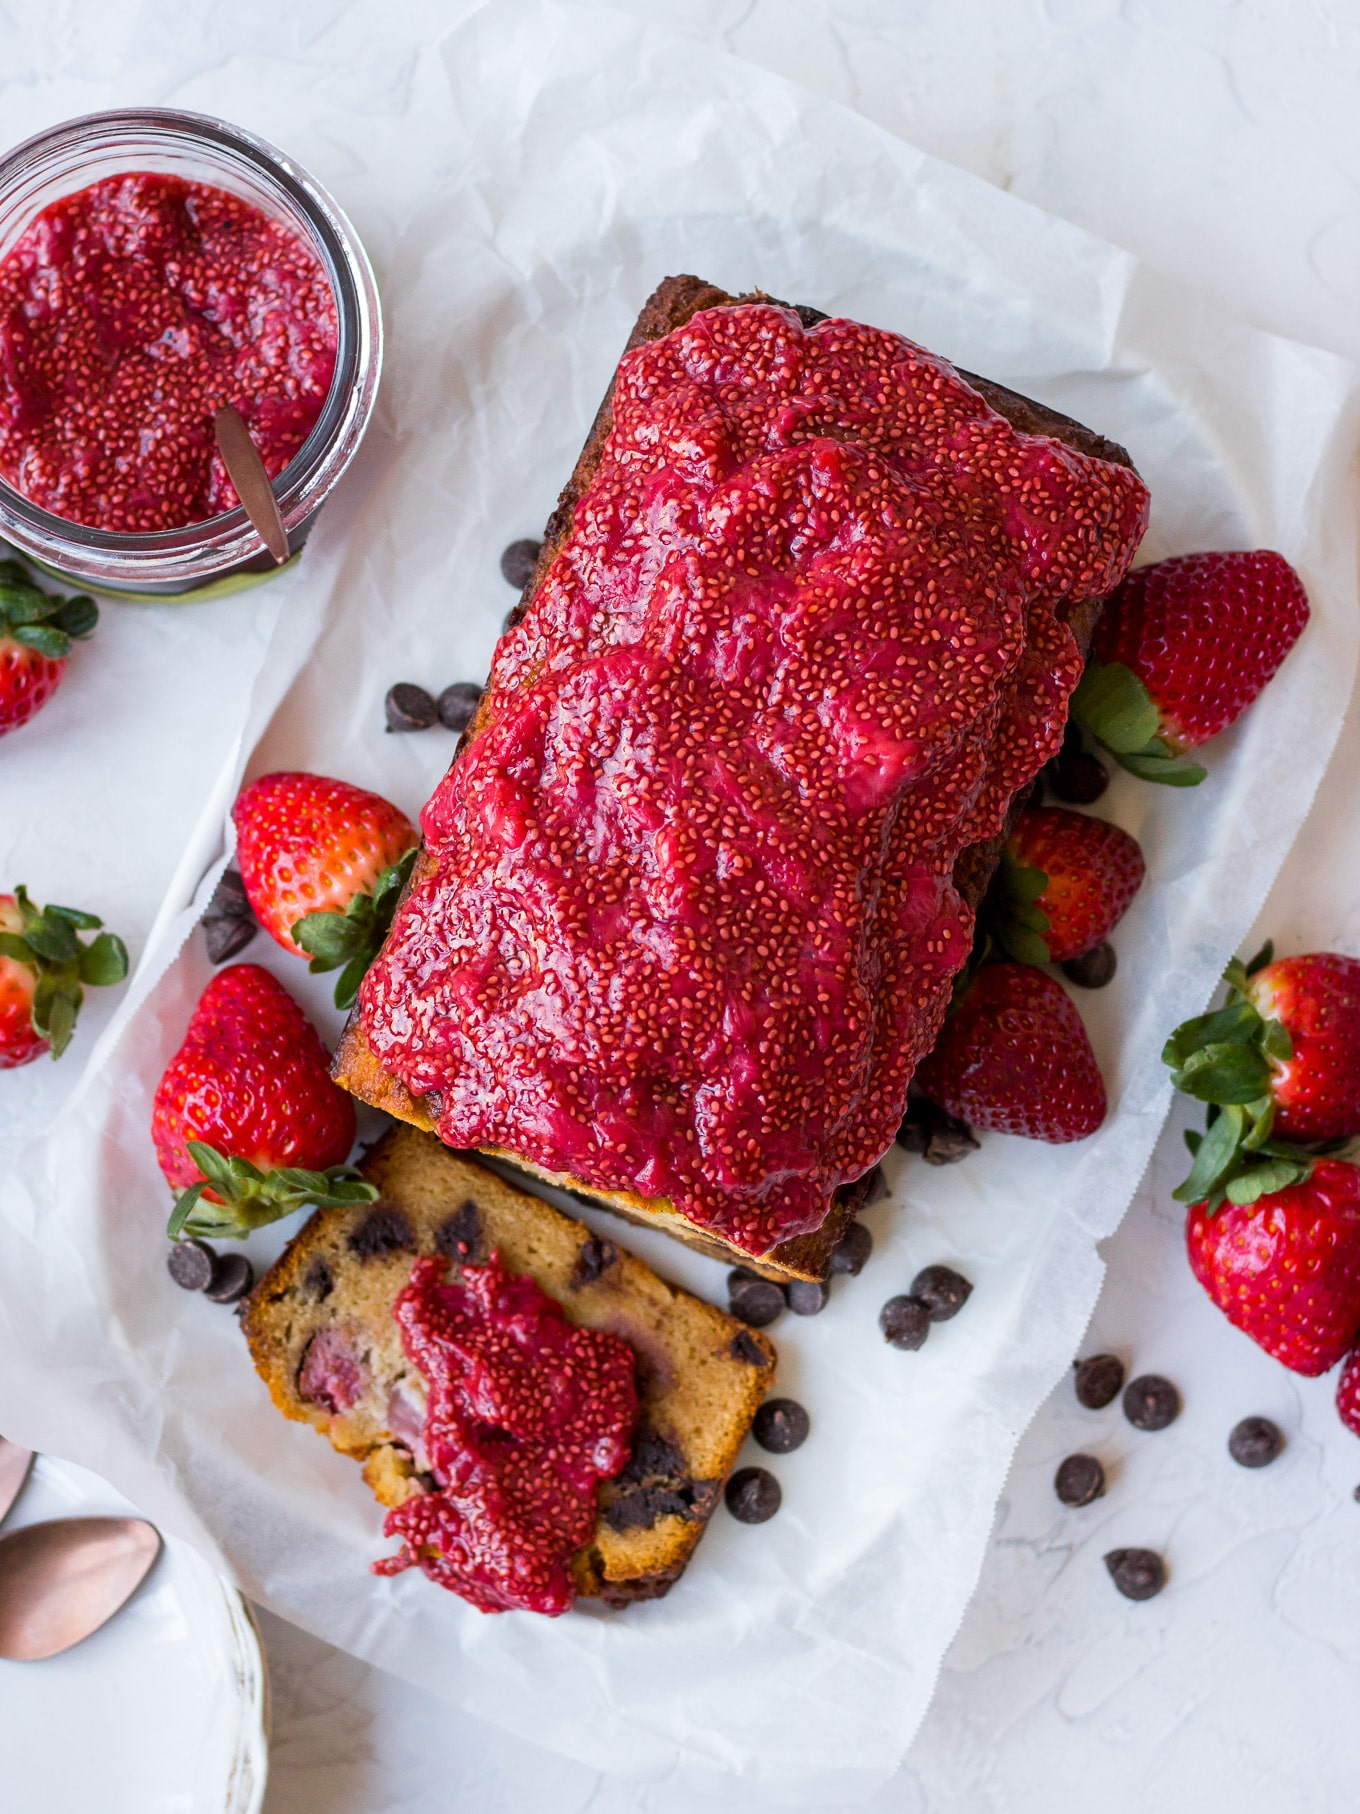 Gluten free Choc Chip Strawberry Cake Recipe on Nourish Every Day Blog